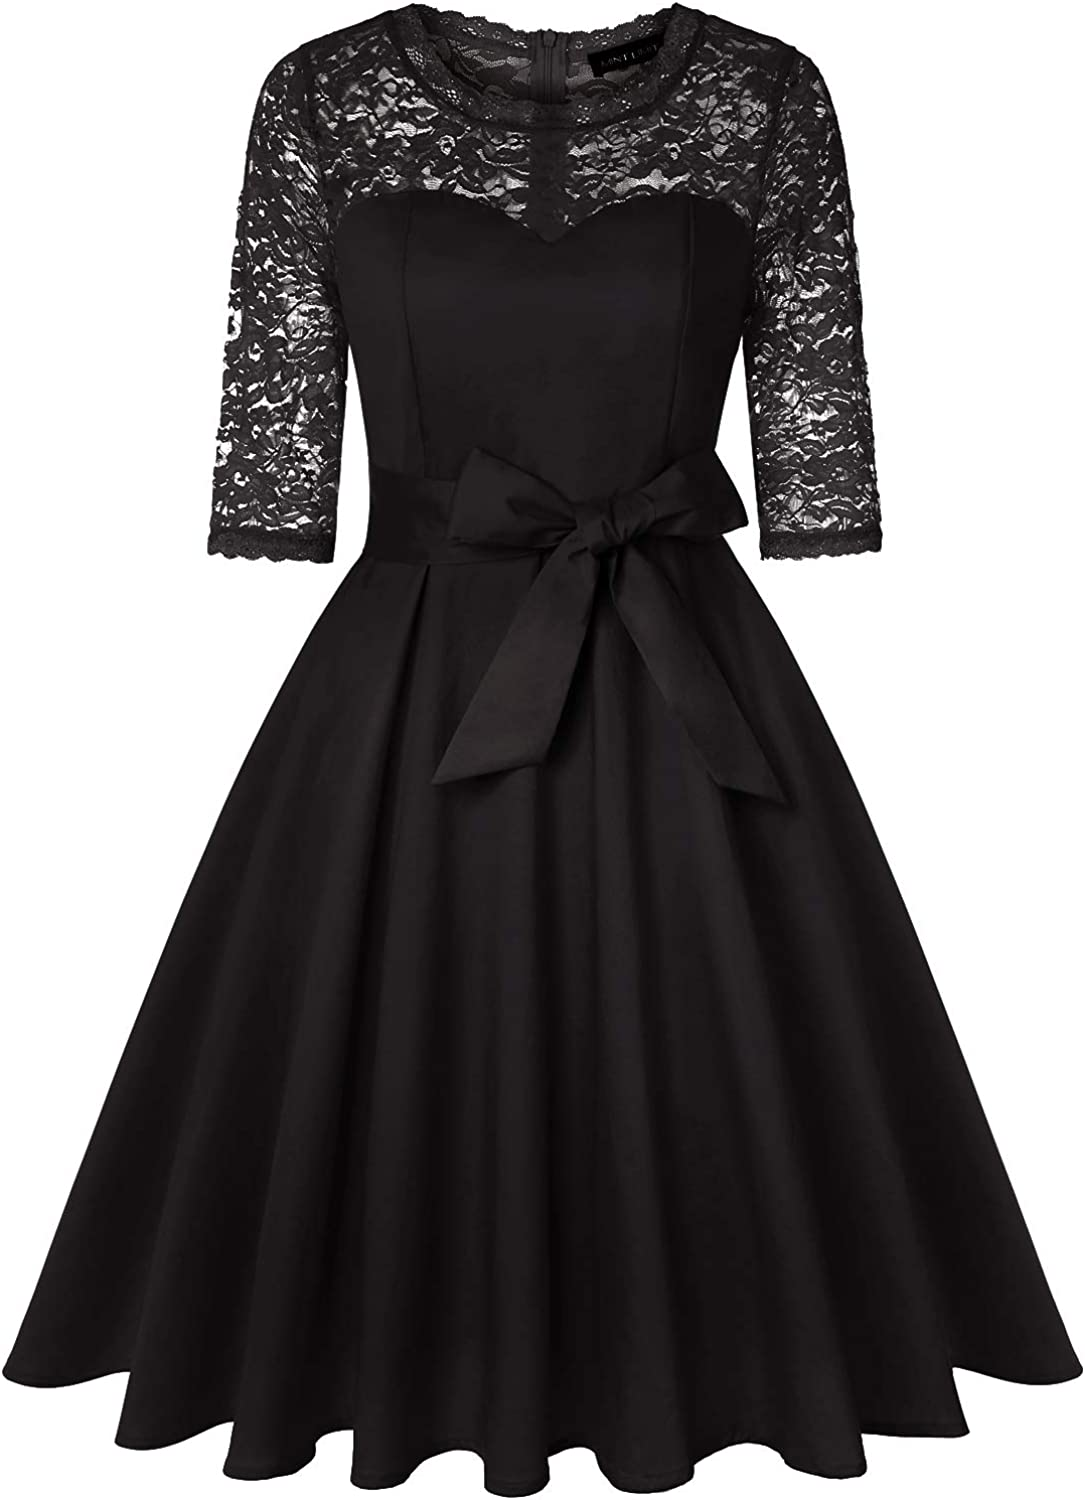 MINTLIMIT Women's Vintage Floral Lace 3/4 Sleeve Belted Cocktail Party Dress with Pockets